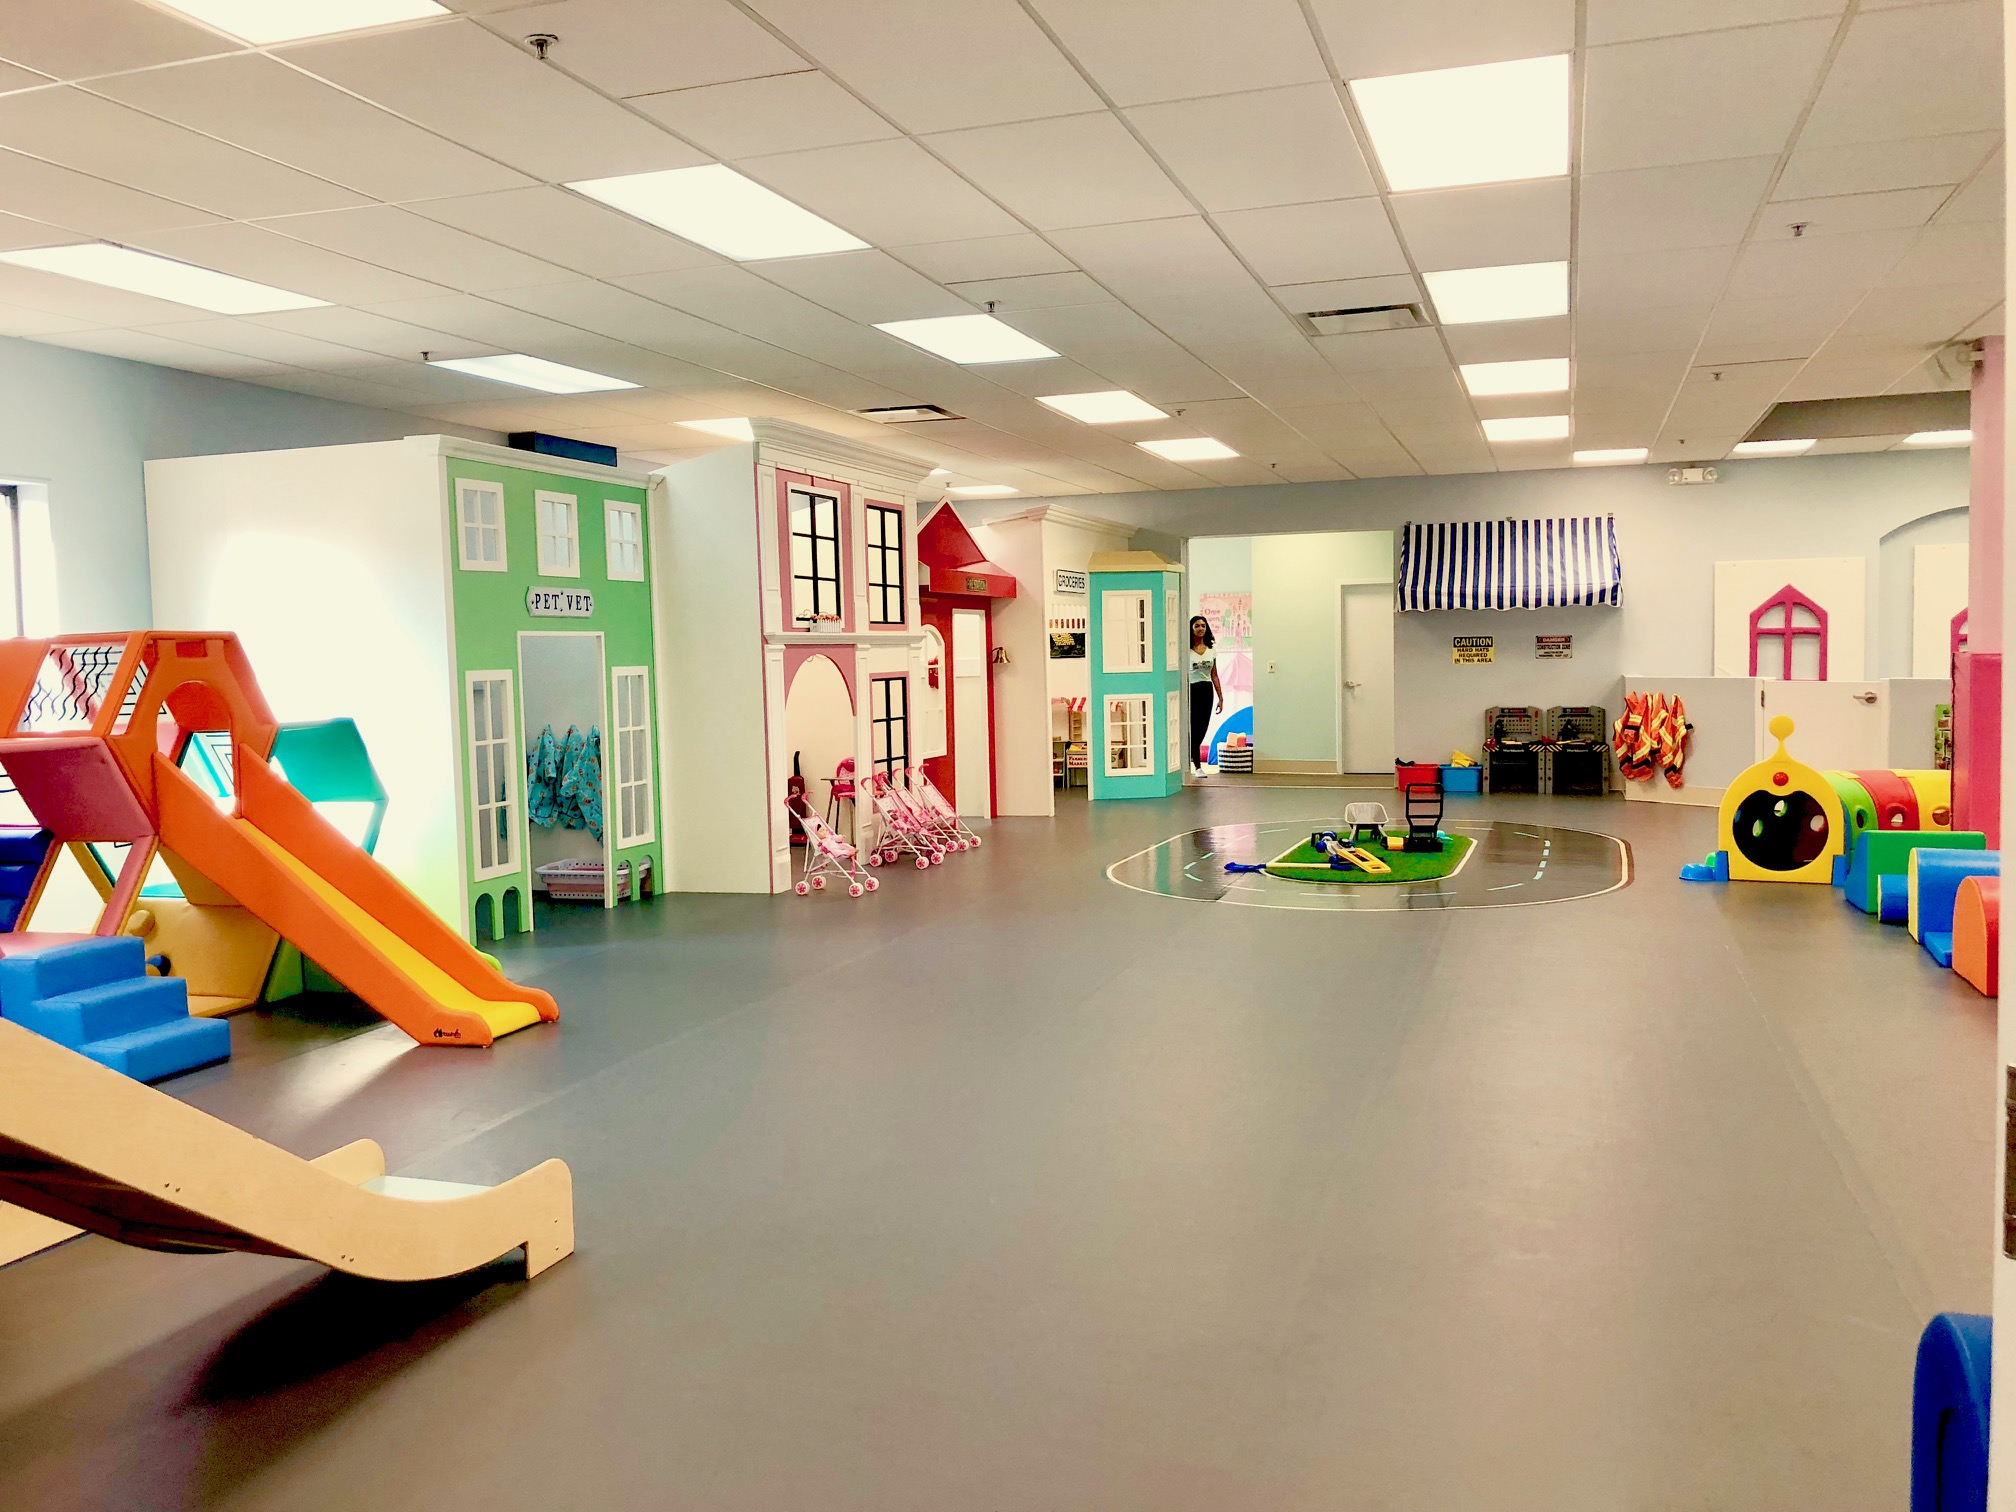 The Village Play Caf? Toddler Attractions in NJ